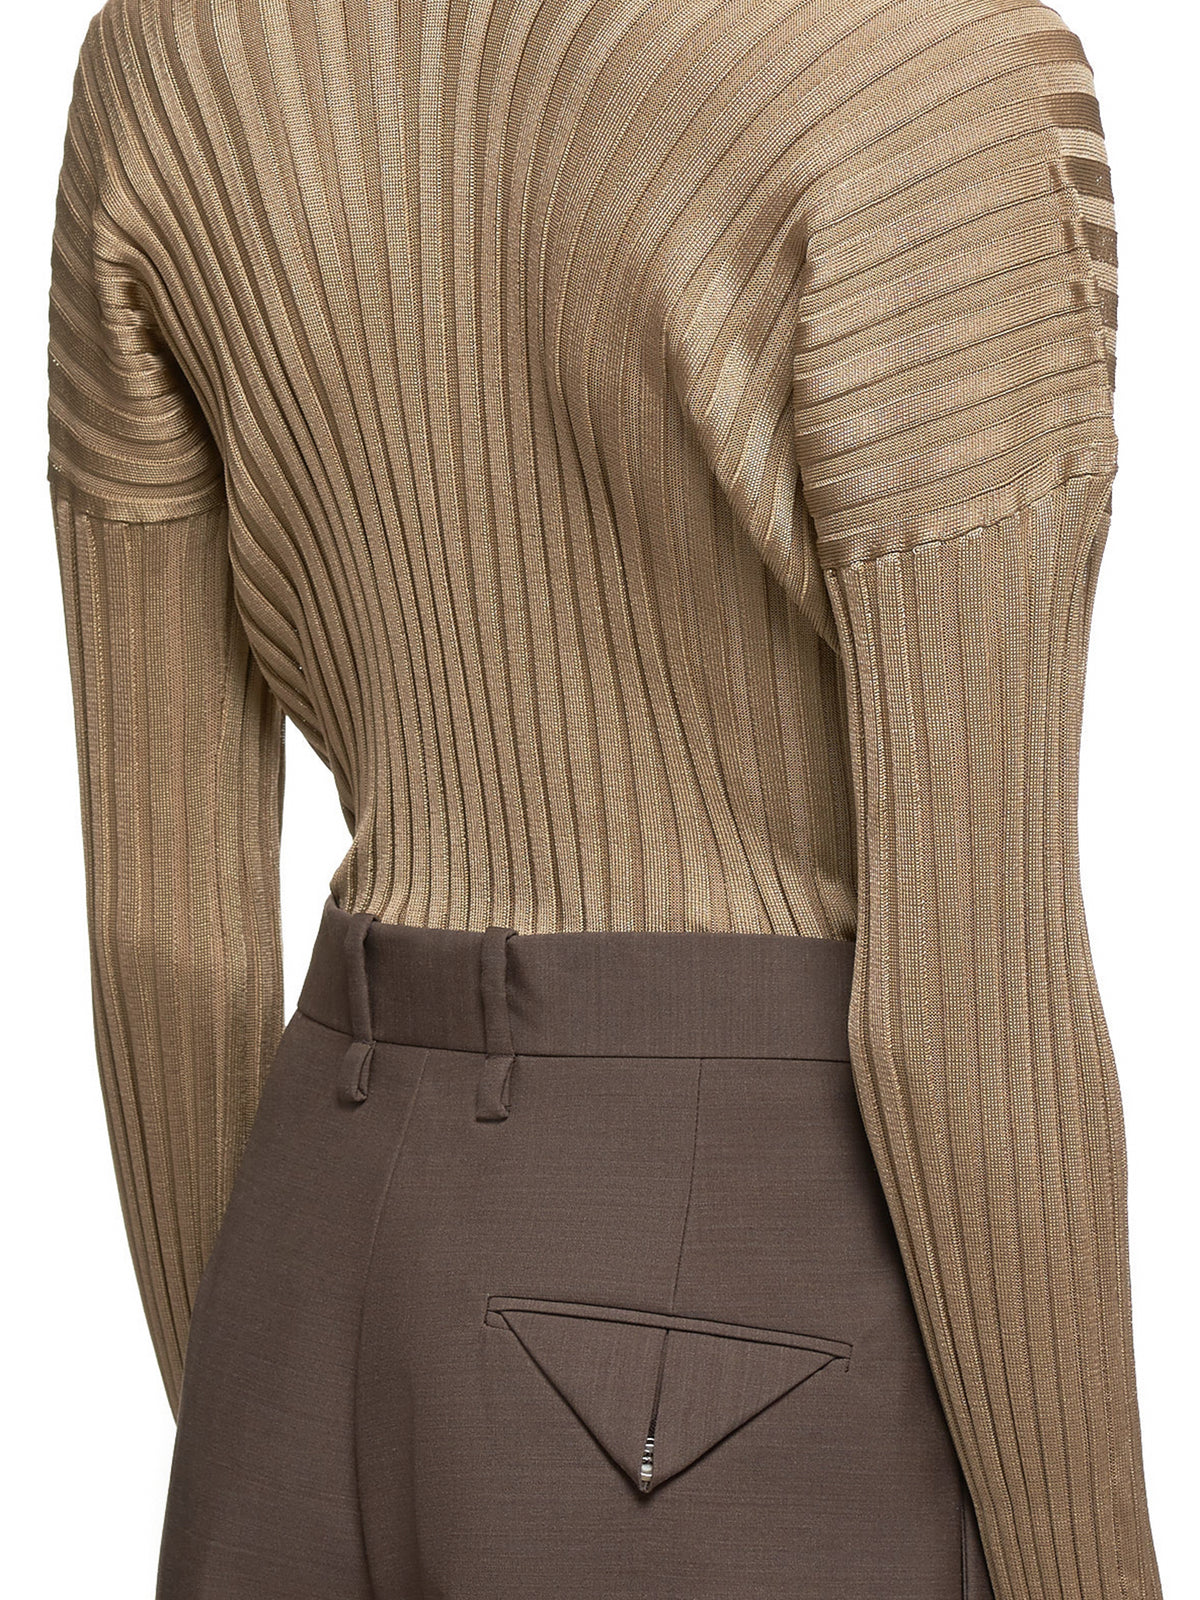 Bottega Veneta Top - Hlorenzo Detail 2